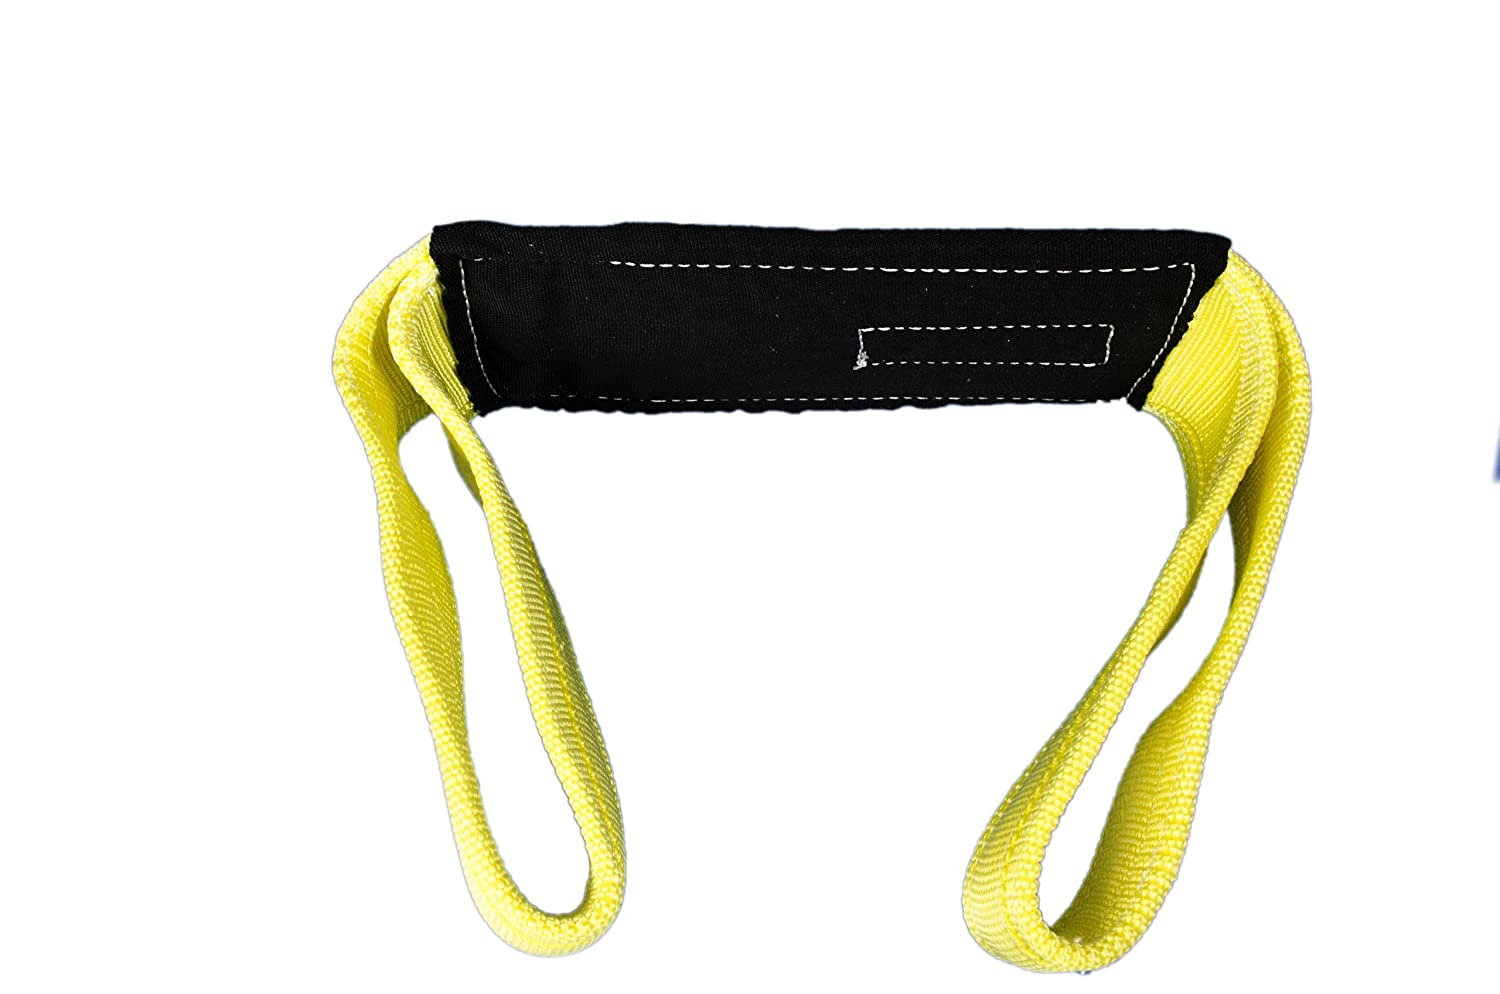 """B00AITWNS0 Stren-Flex EEF2-906CB-3 Type 3 Heavy Duty Nylon Flat Eye and Eye Web Sling with Wrapped Body, 2 Ply, 18,000 lbs Vertical Load Capacity, 3' Length x 6"""" Width, Yellow 81PY3HhqkNL._SL1500_"""